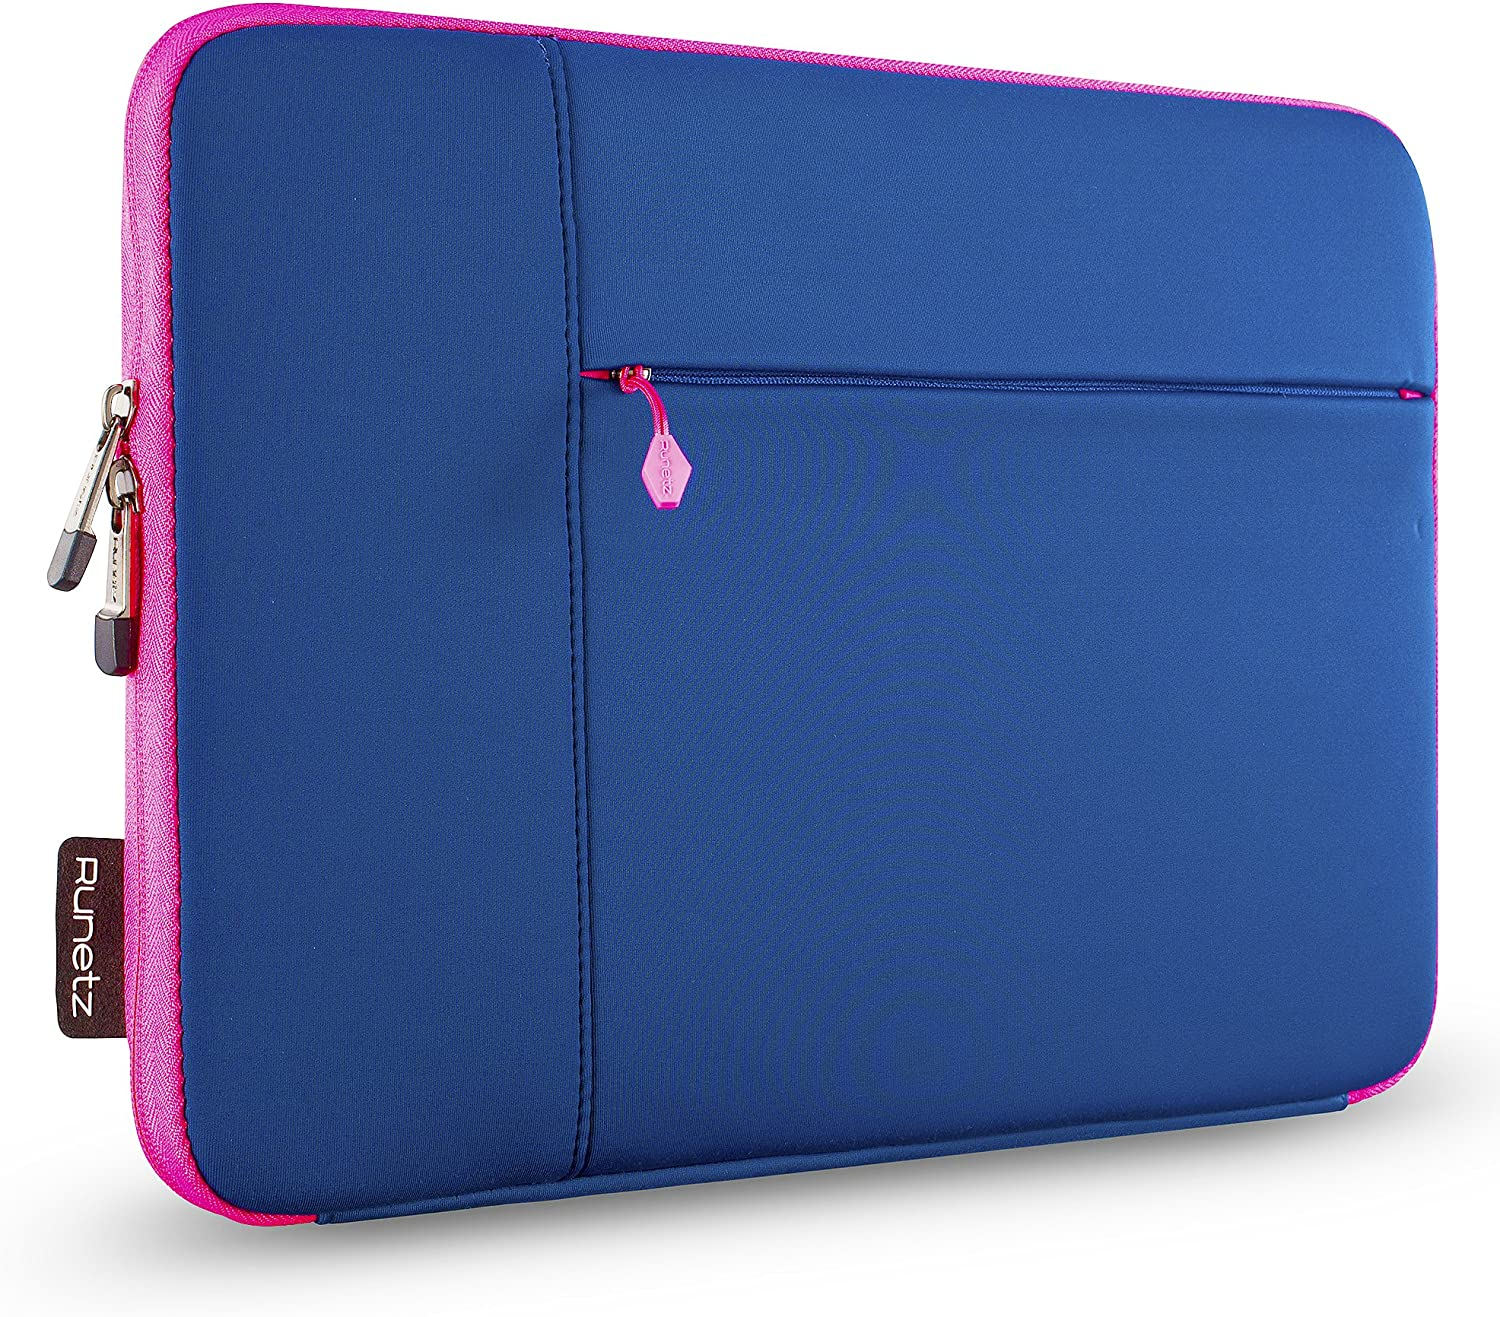 Runetz MacBook Pro 13 inch Sleeve Neoprene MacBook Air 13 inch Sleeve 2017-2012 Laptop Sleeve Notebook Bag Case Cover with Accessory Pocket Older Version Size, Navy